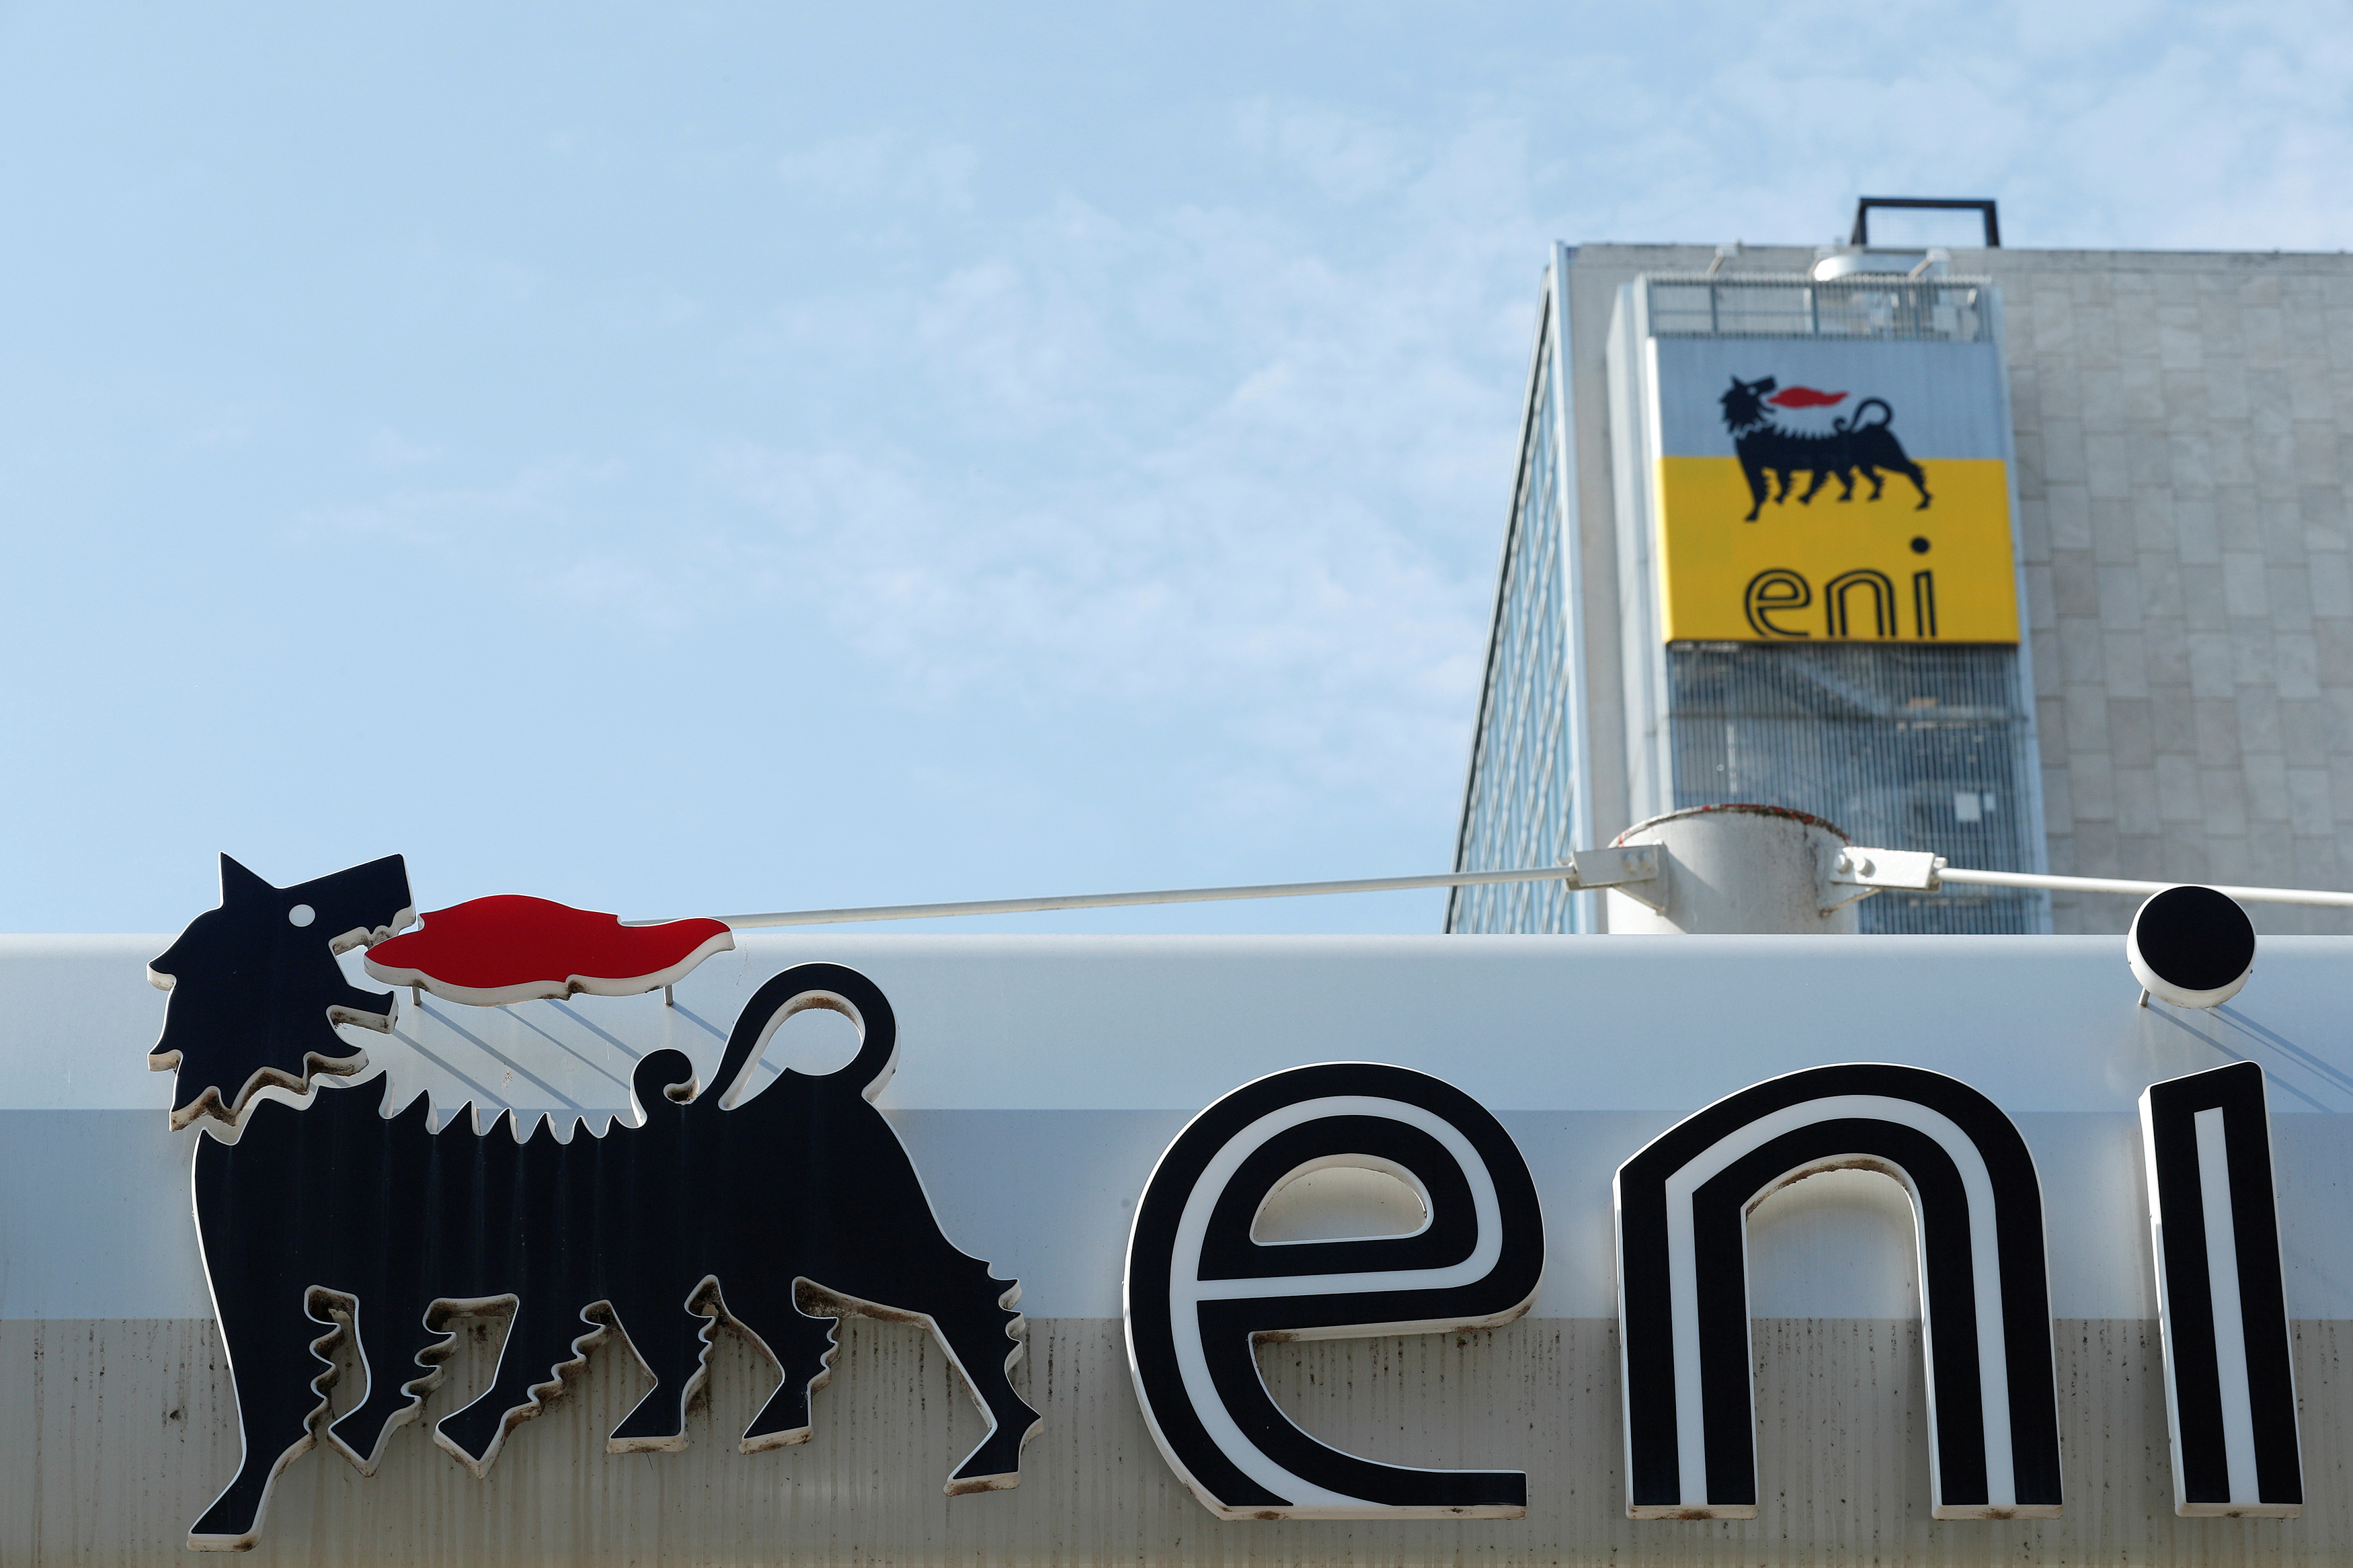 The logo of Italian energy company Eni at a gas station in Rome, Italy September 30, 2018.  REUTERS/Alessandro Bianchi